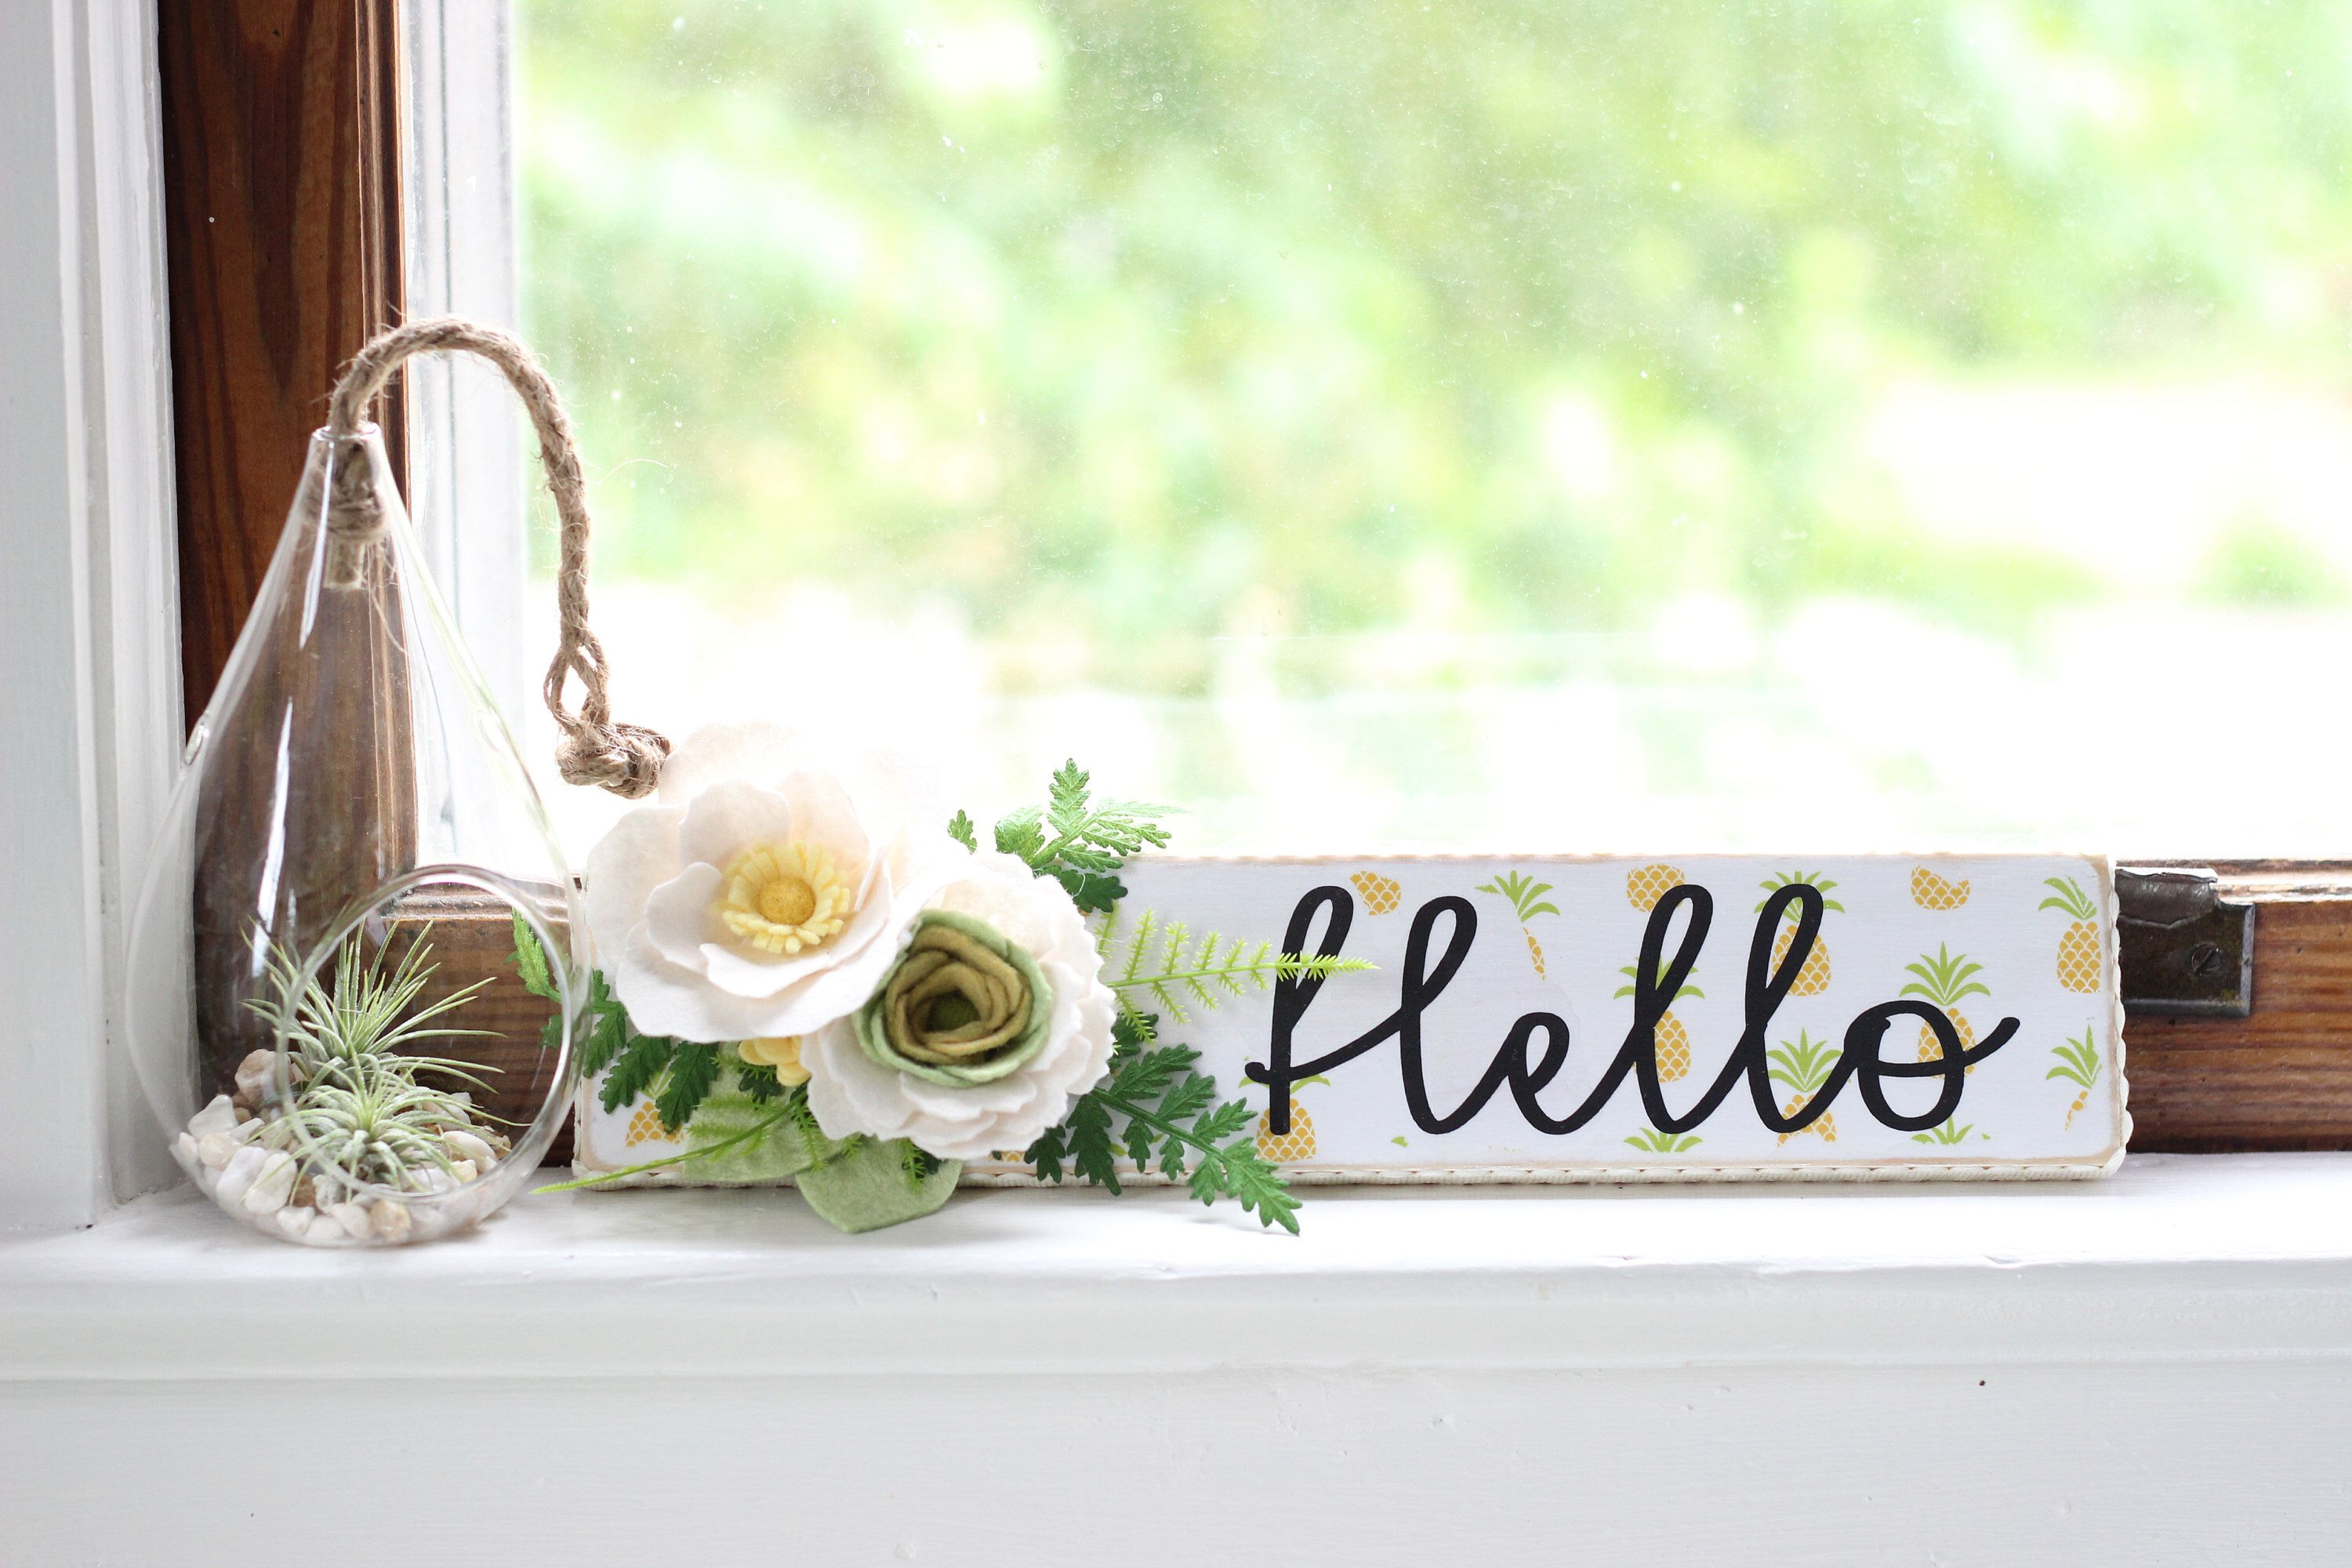 Excited To Share The Latest Addition To My Etsy Shop Pineapple Hello Wooden Sign Farmhouse Wooden Sign Distressed Sign Chef Kitchen Decor Pineapple Kitchen Wooden Signs